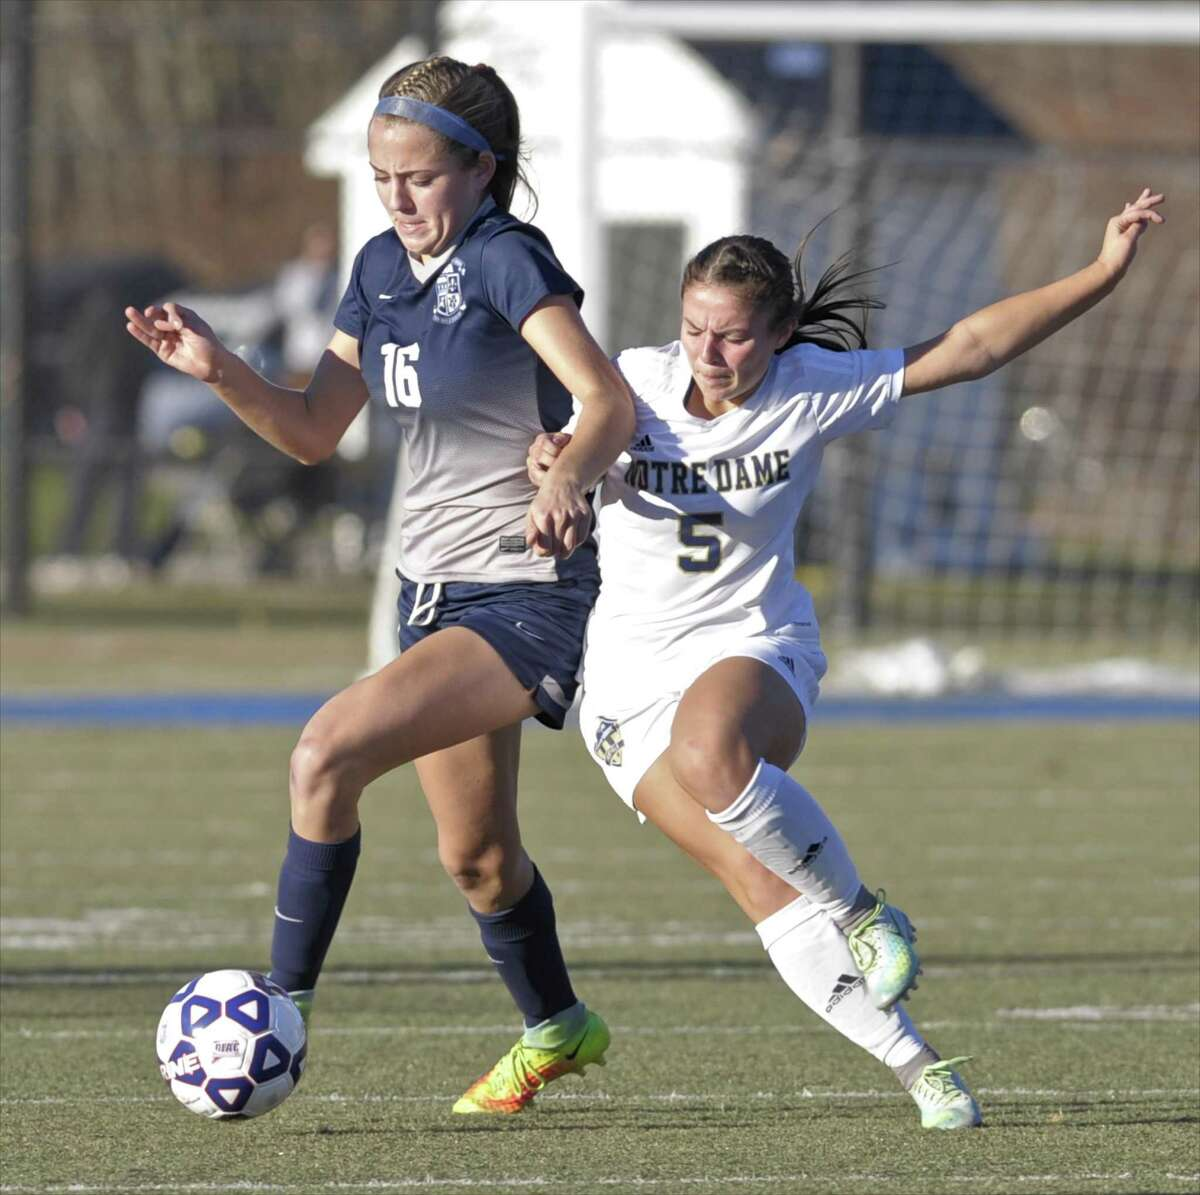 Immaculate's McKinsey Jarboe (16) and Notre Dame's Erika Quinones (5) battle for the ball in the girls high school Class M soccer state championship game between Immaculate and Notre Dame-Fairfield high schools, Saturday afternoon, November 19, 2016 on Ray Snyder Sr. Field, in Waterbury, Conn. Both teams were names co-champions after battling to a 0-0 in regulation and overtime.